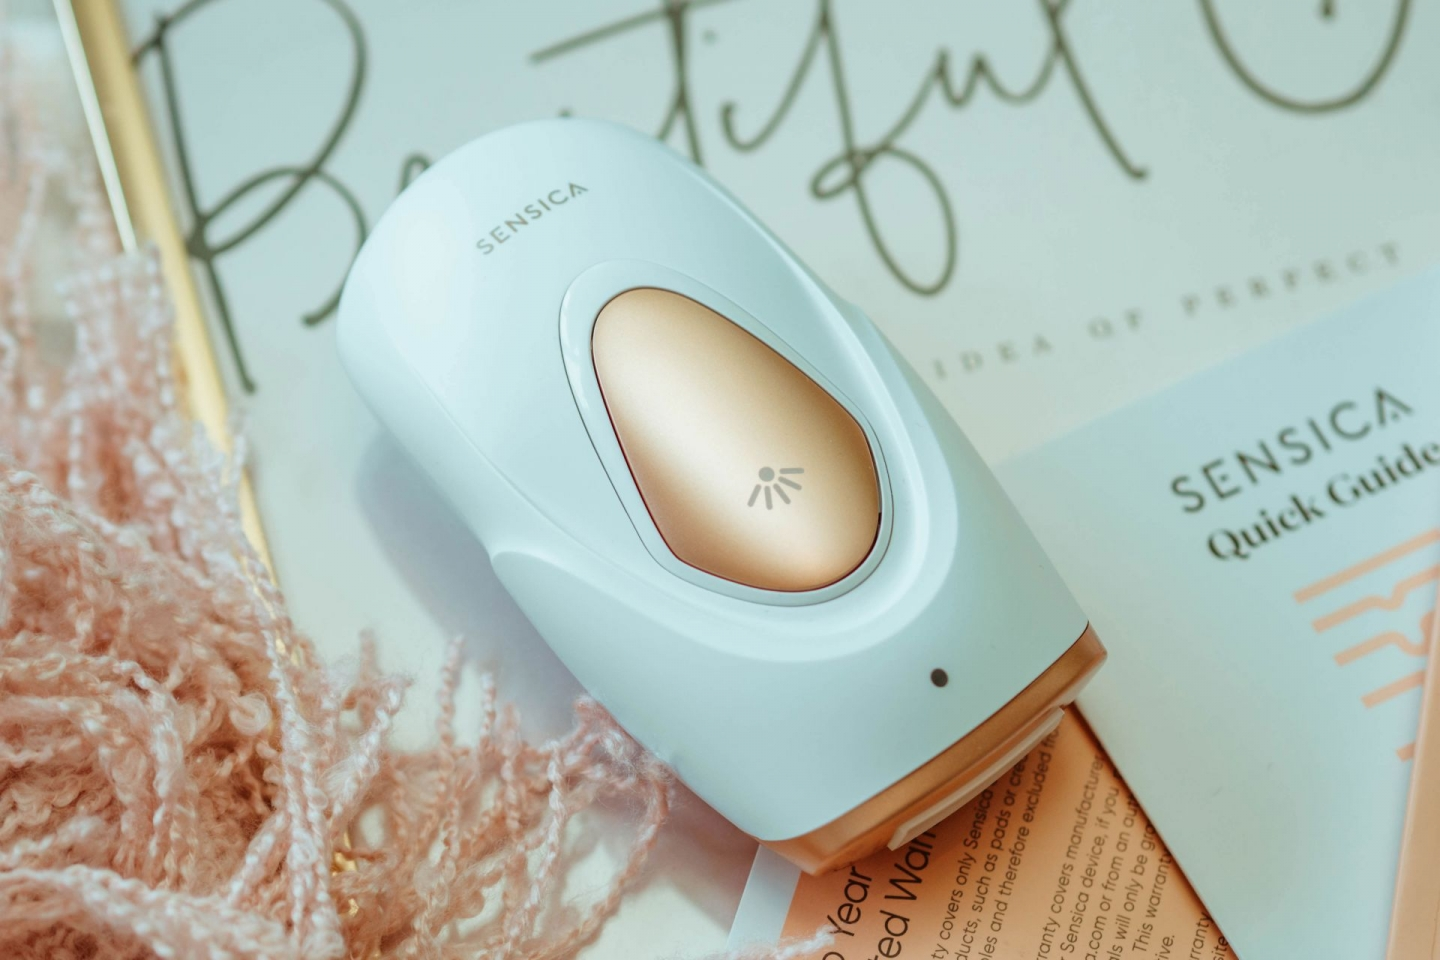 Sensica home hair removal